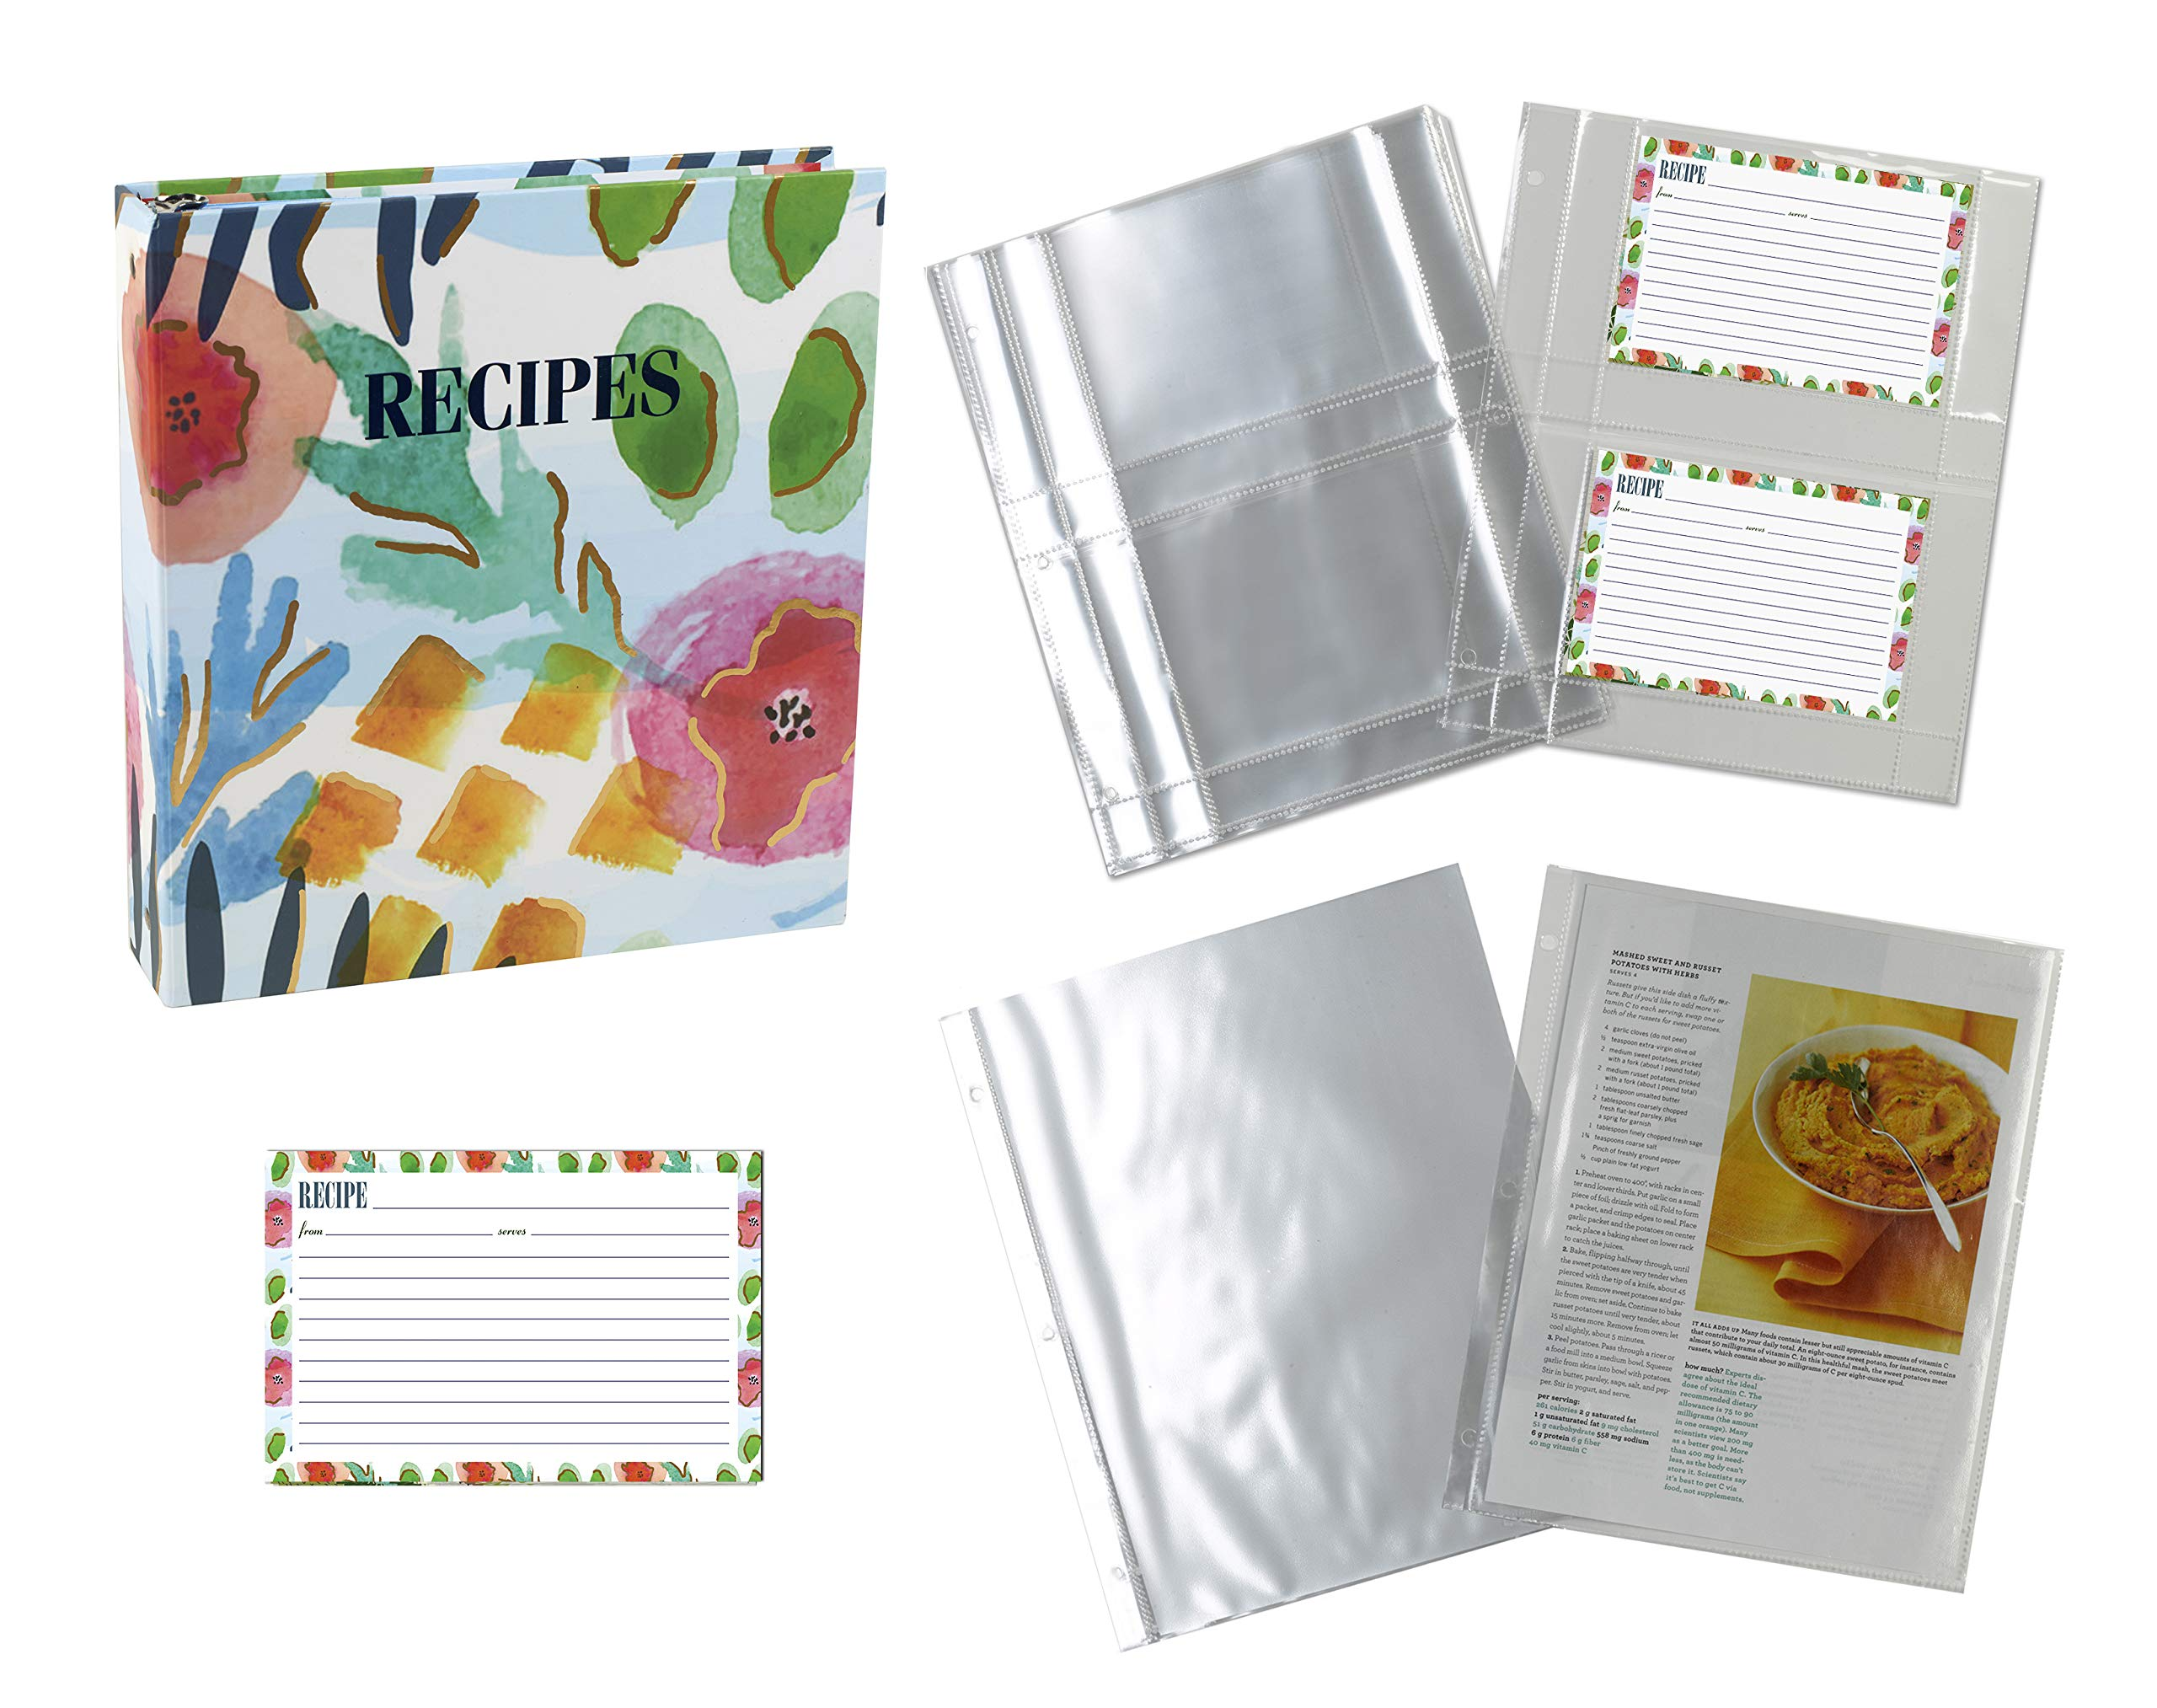 Meadowsweet Kitchens Recipe Binder Organizer Gift Set with Recipe Cards and Plastic Protector Sheets (Watercolors) by Meadowsweet Kitchens